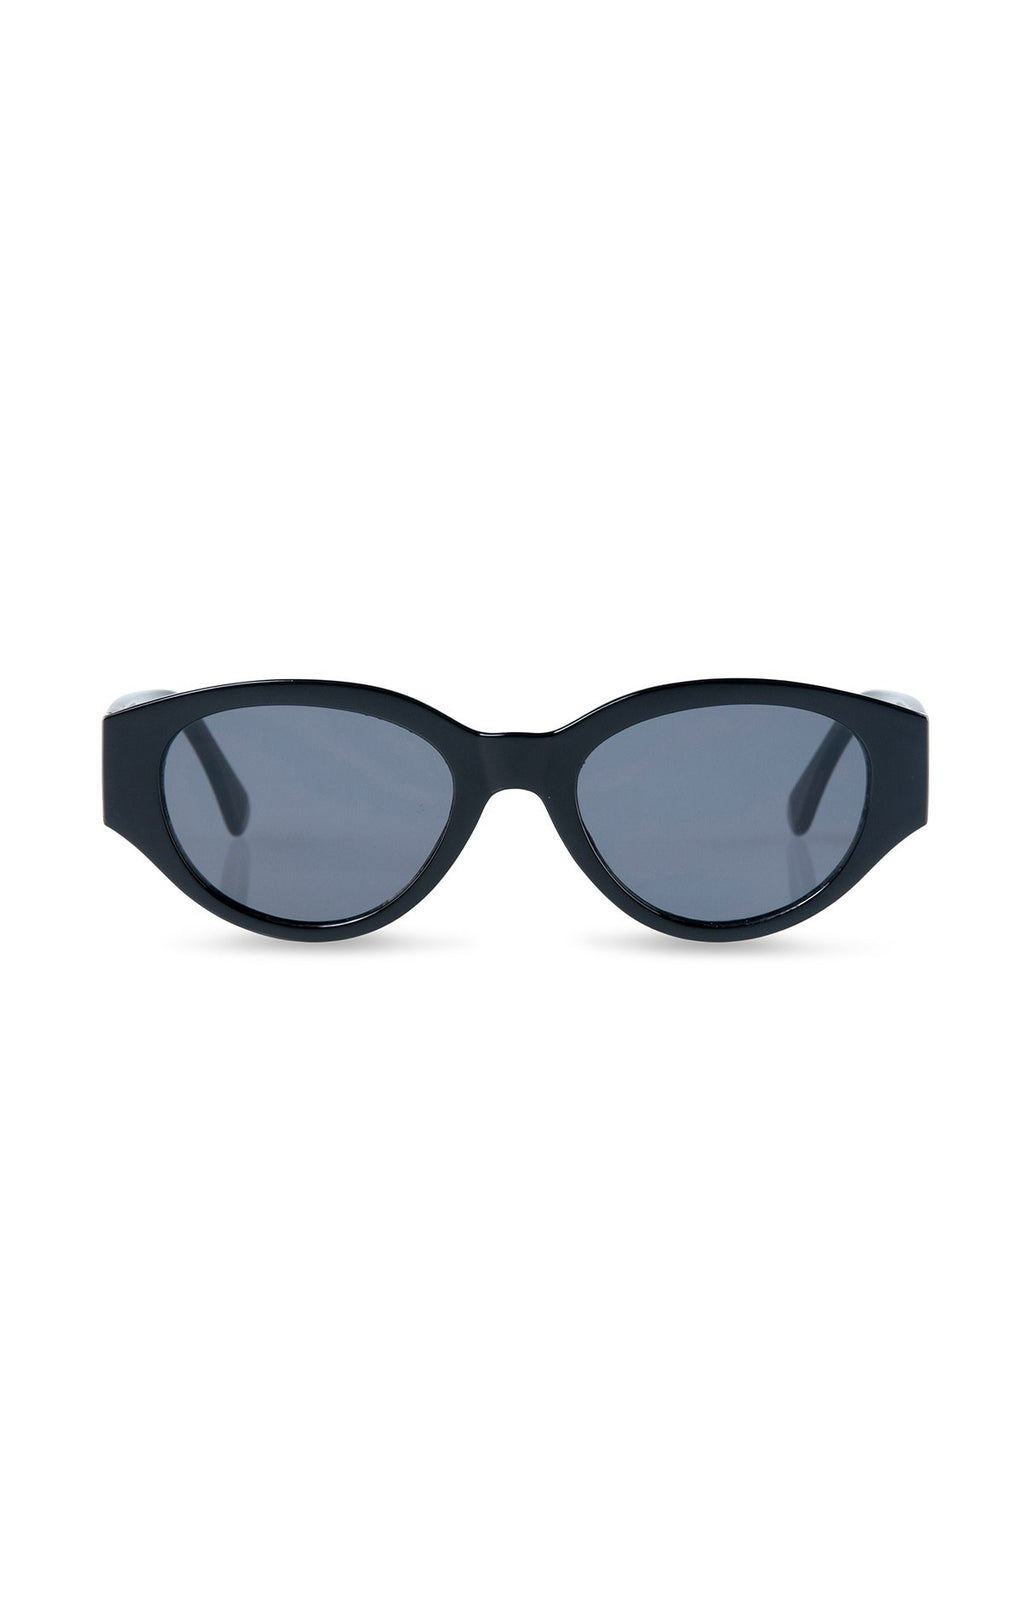 REALITY STRICT MACHINE SUNGLASSES FRONT